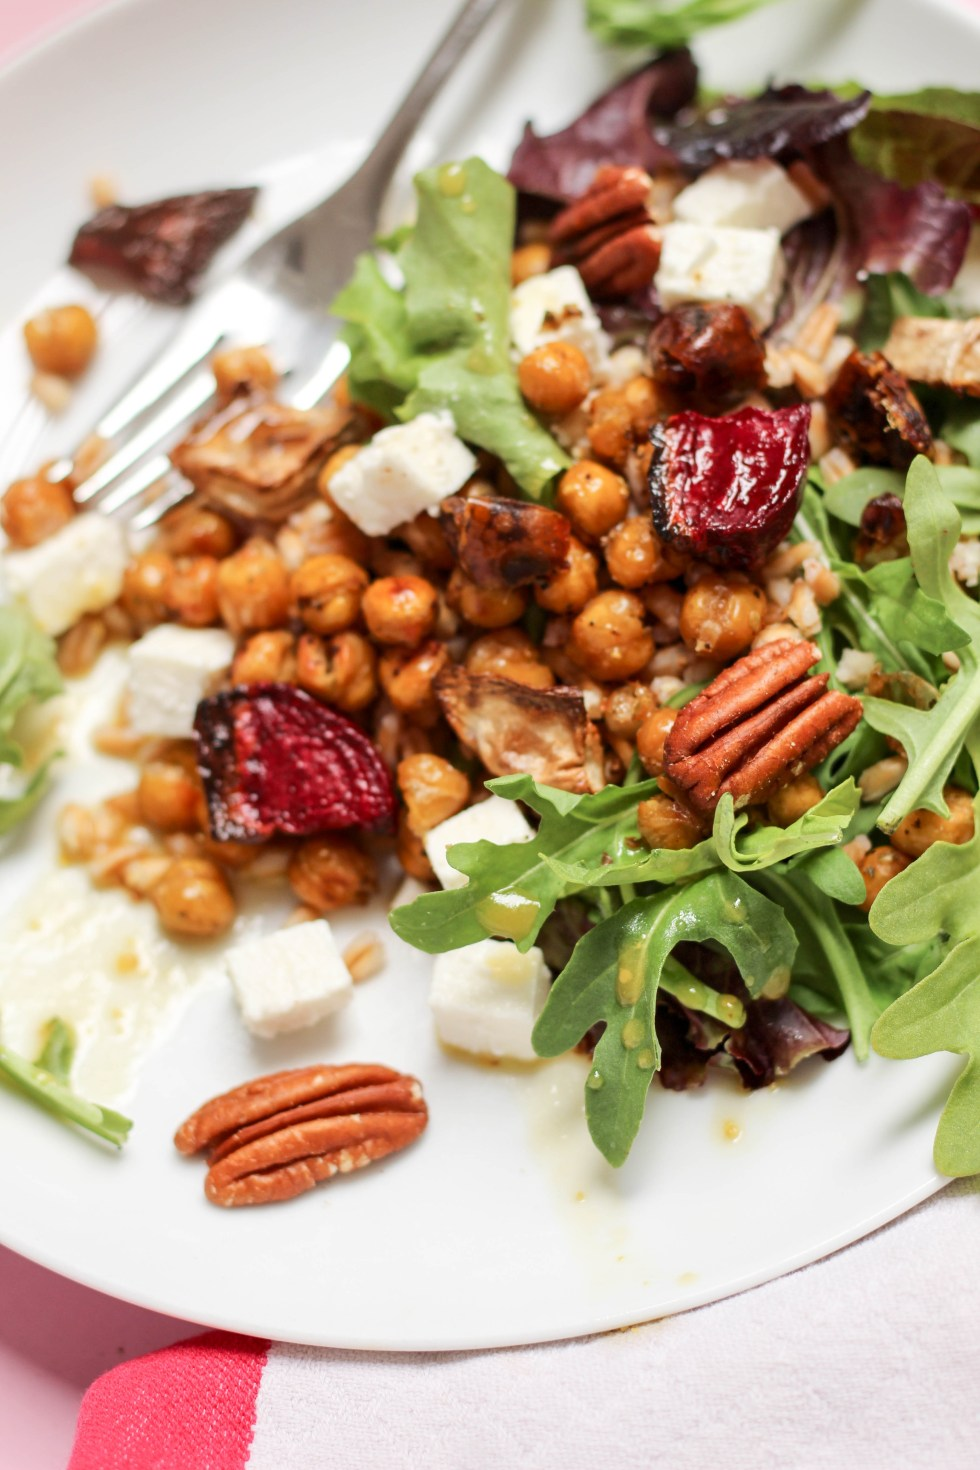 Hearty Farro and Beet Salad with roasted turnips and beets, crispy chickpeas, feta, chopped dates, and arugula // POP KITCHEN